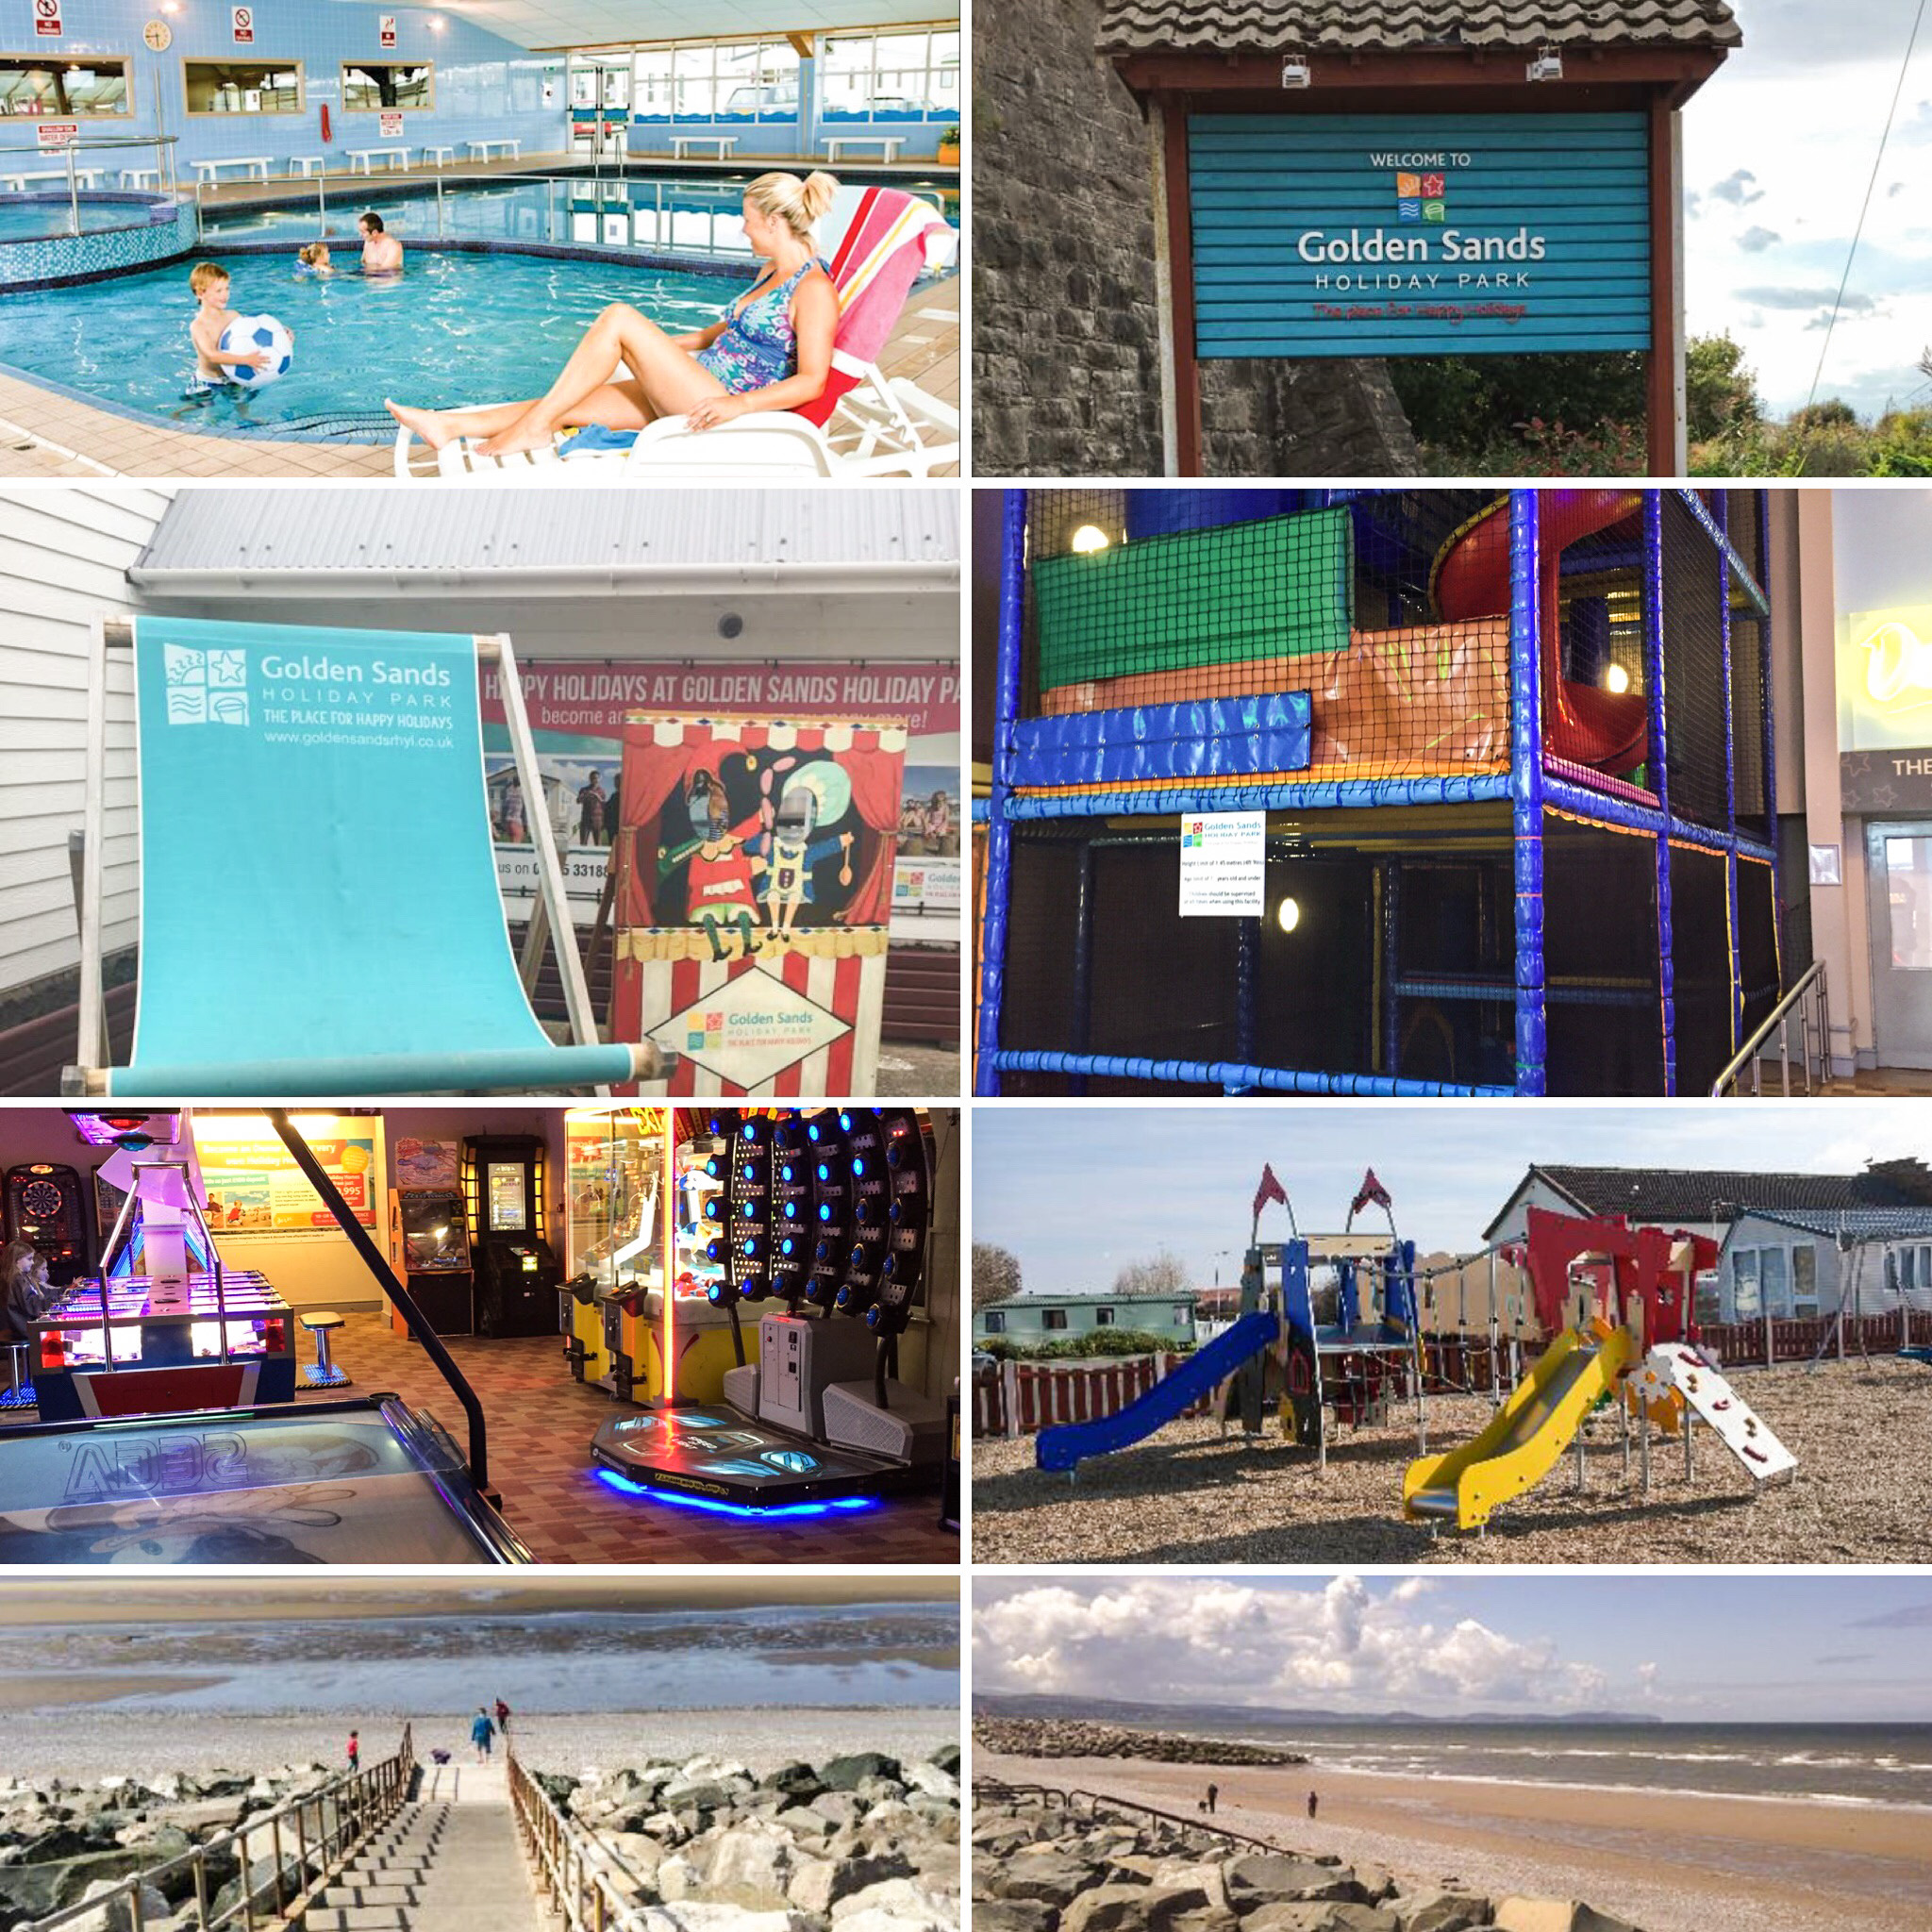 *094* Golden Sands Holiday Park, Rhyl, North Wales